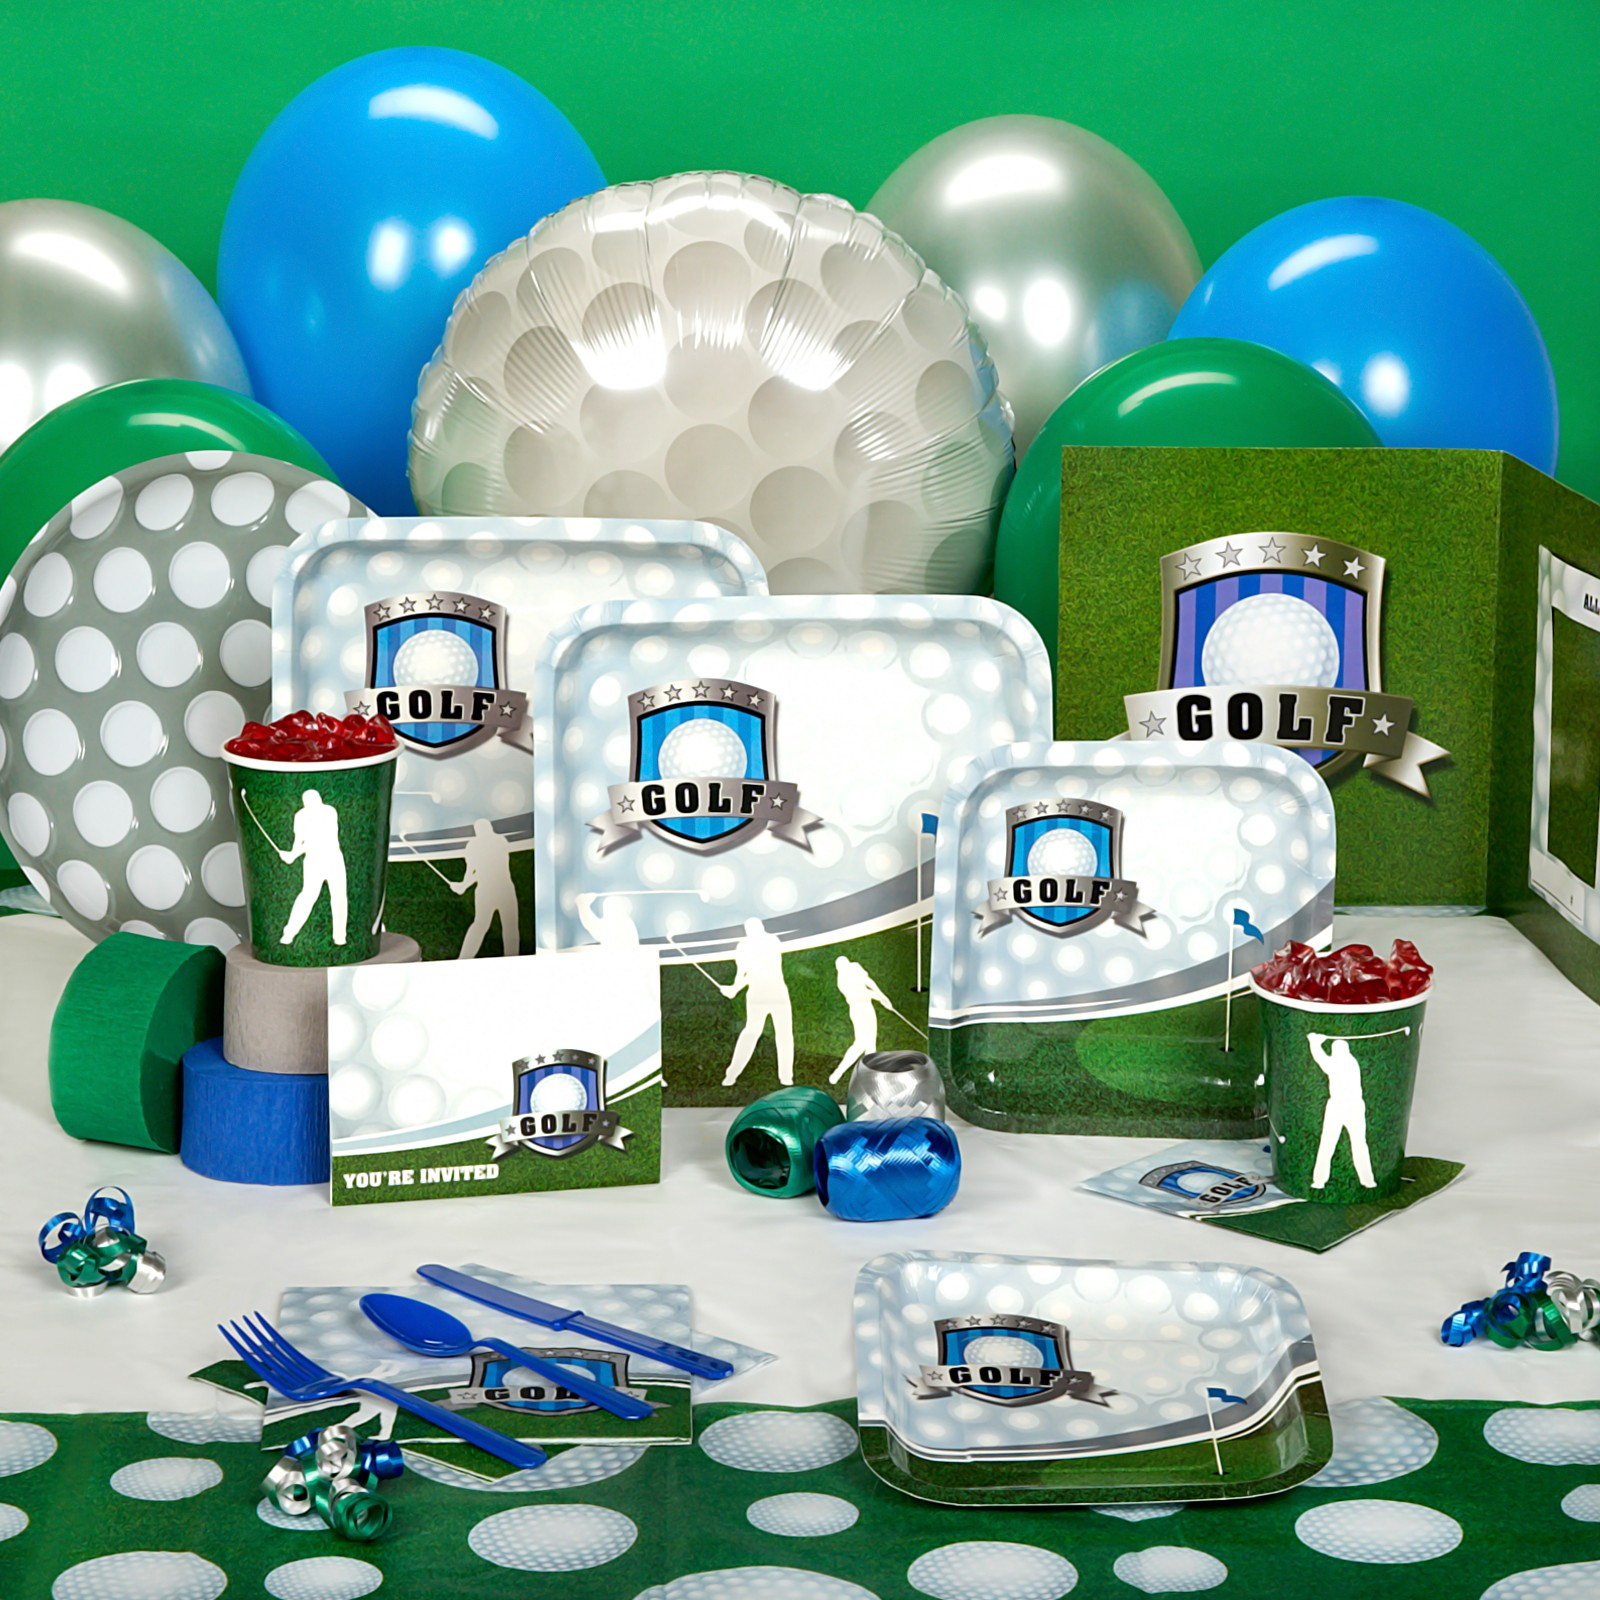 Bear river photo greetings golf birthday party invitation for Decoration stuff